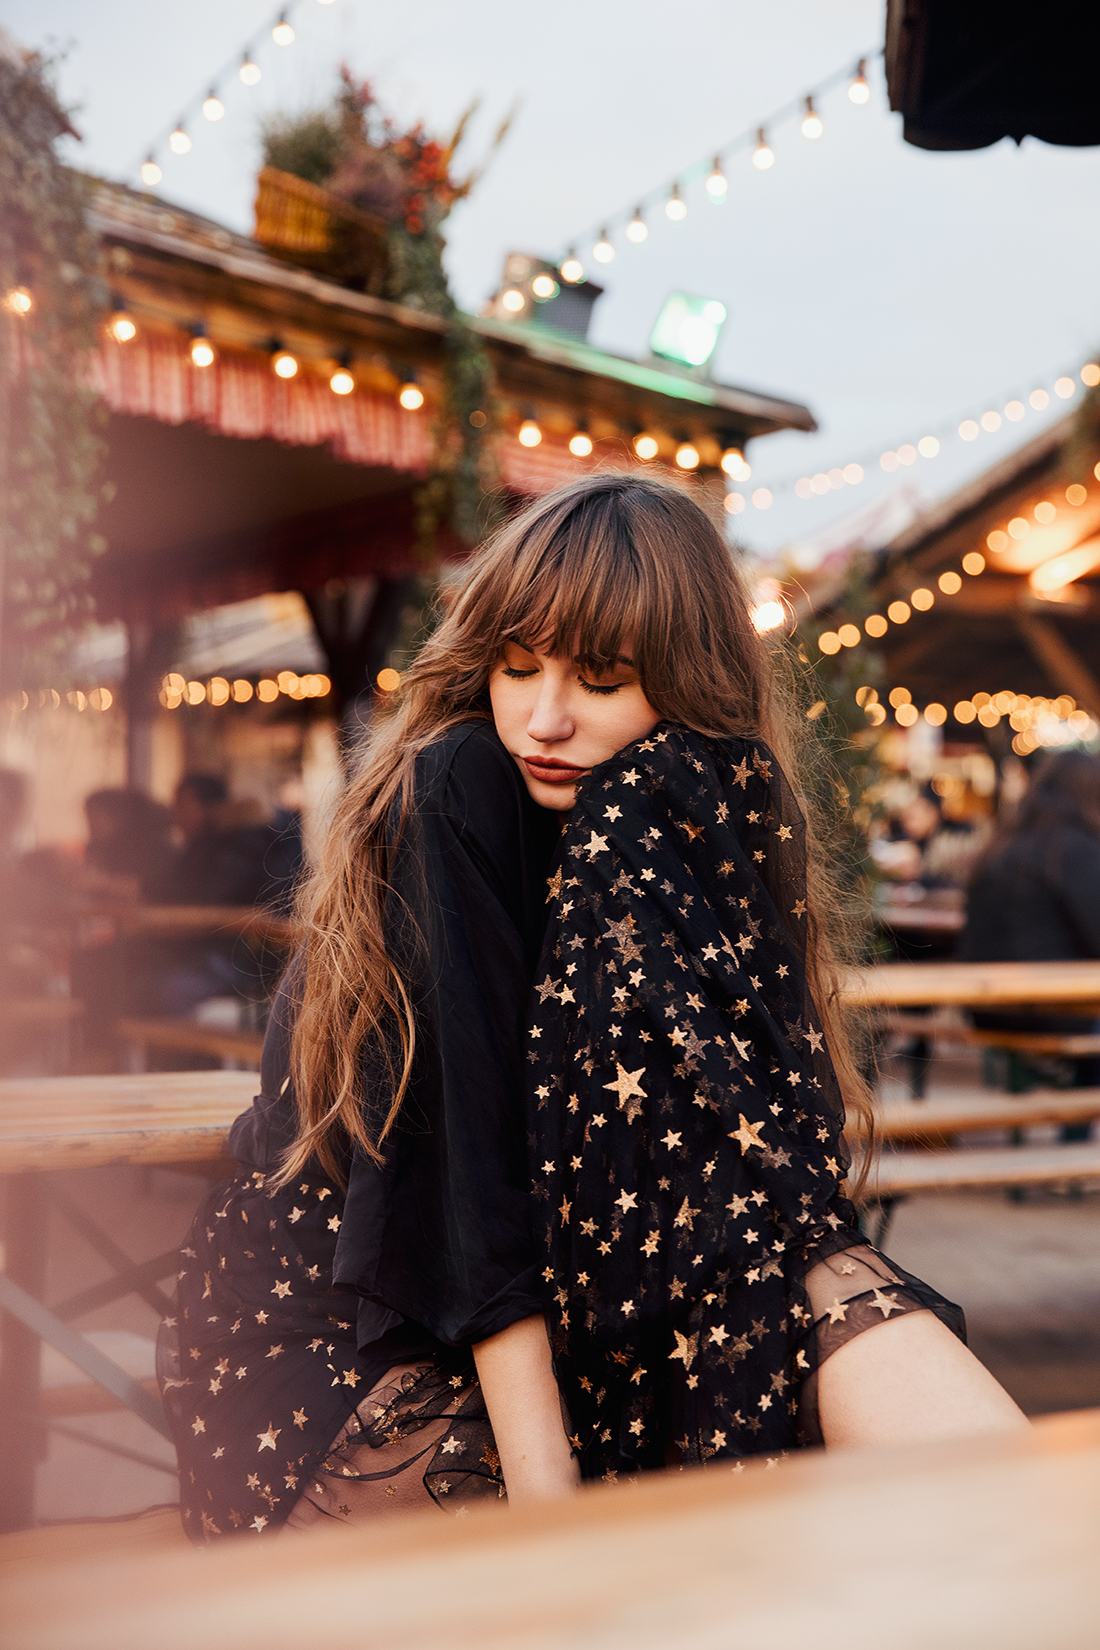 Dreamy portrait of Sara Louise shot in Winter Wonderland by London photographer Ailera Stone